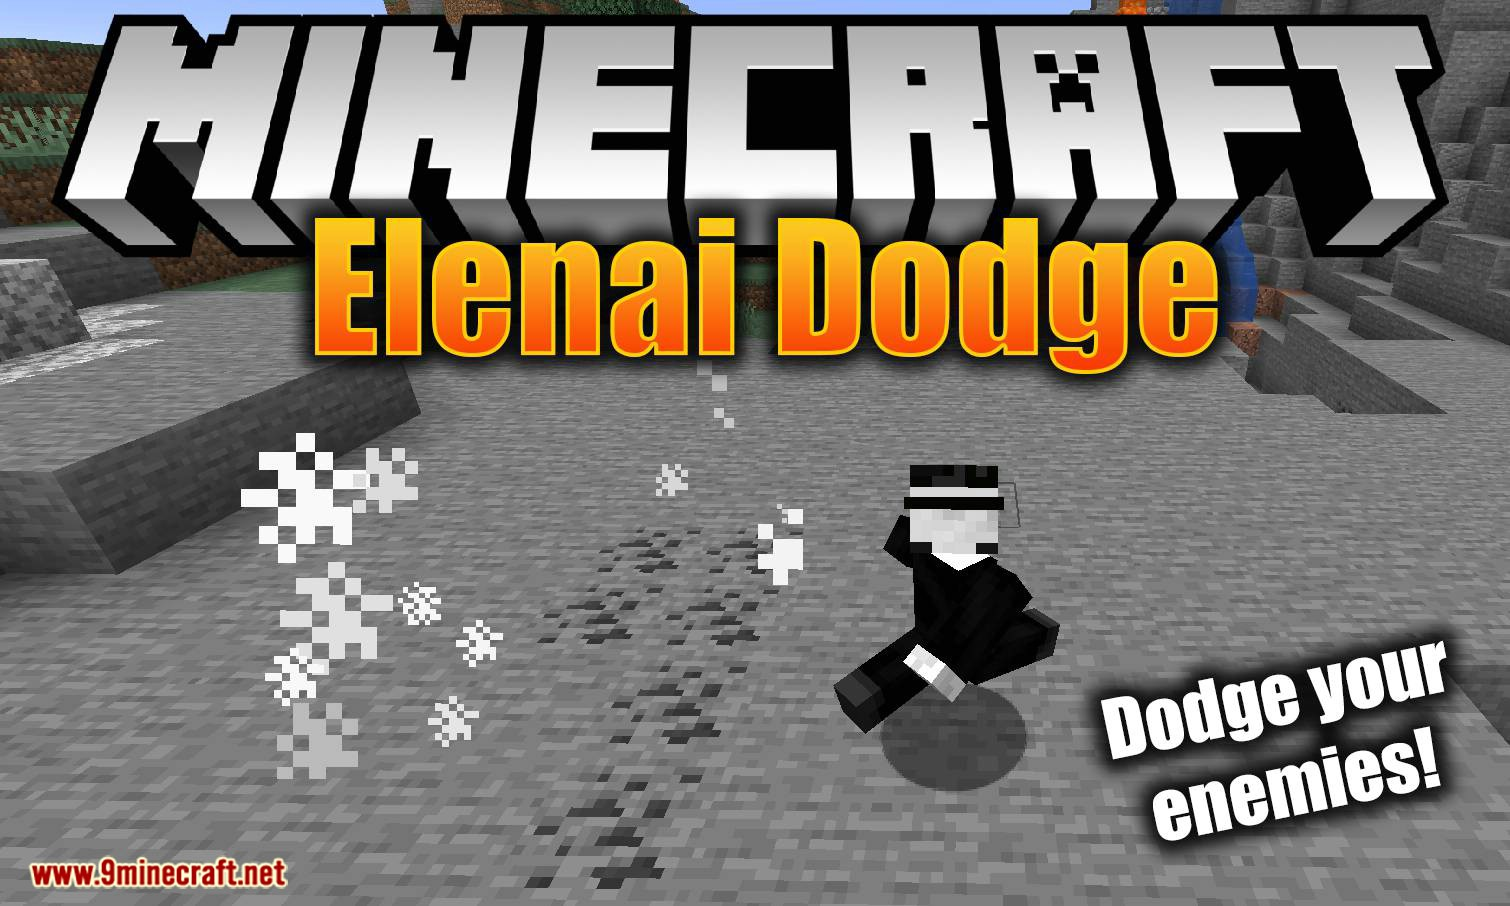 Elenai Dodge mod for minecraft logo